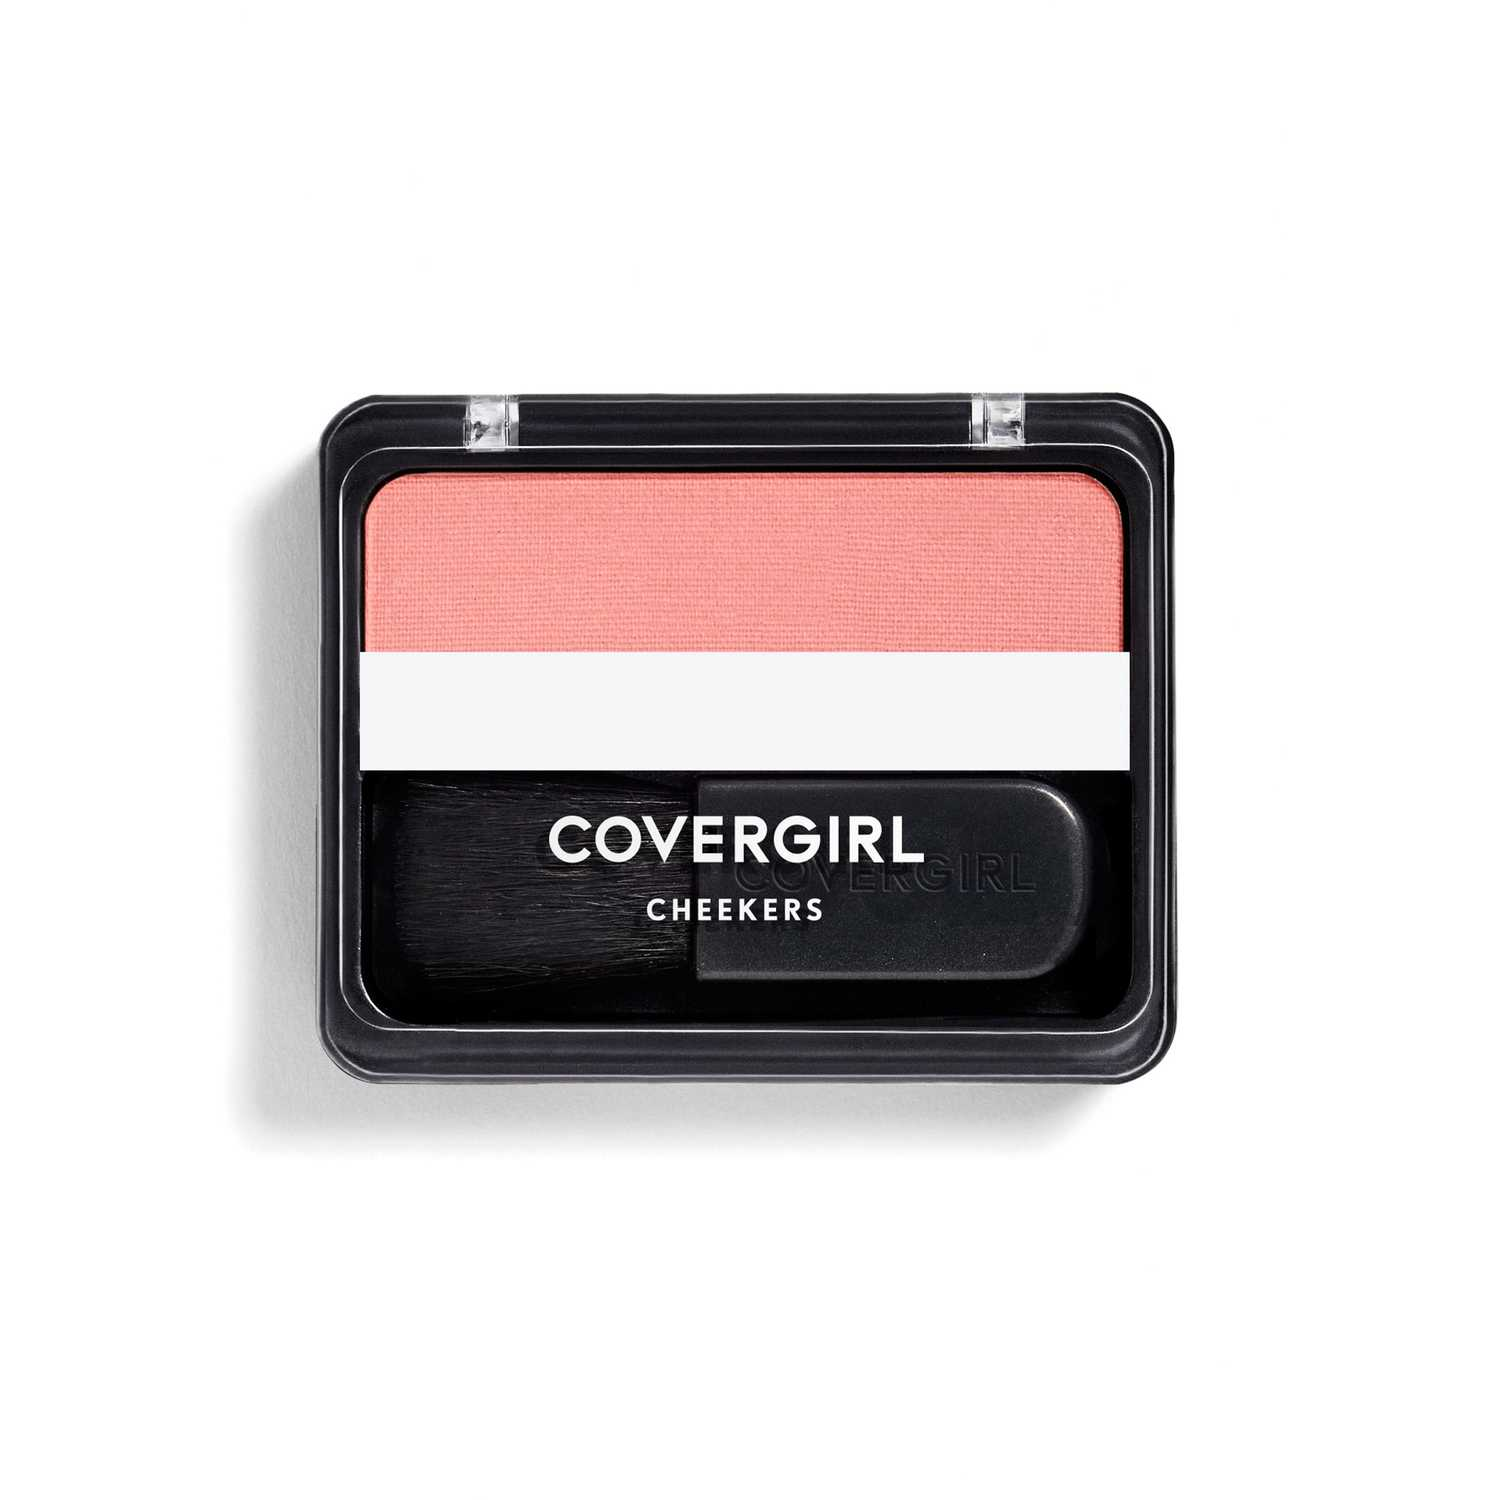 Covergirl Rubor Cheekers Pretty Peach Rubor